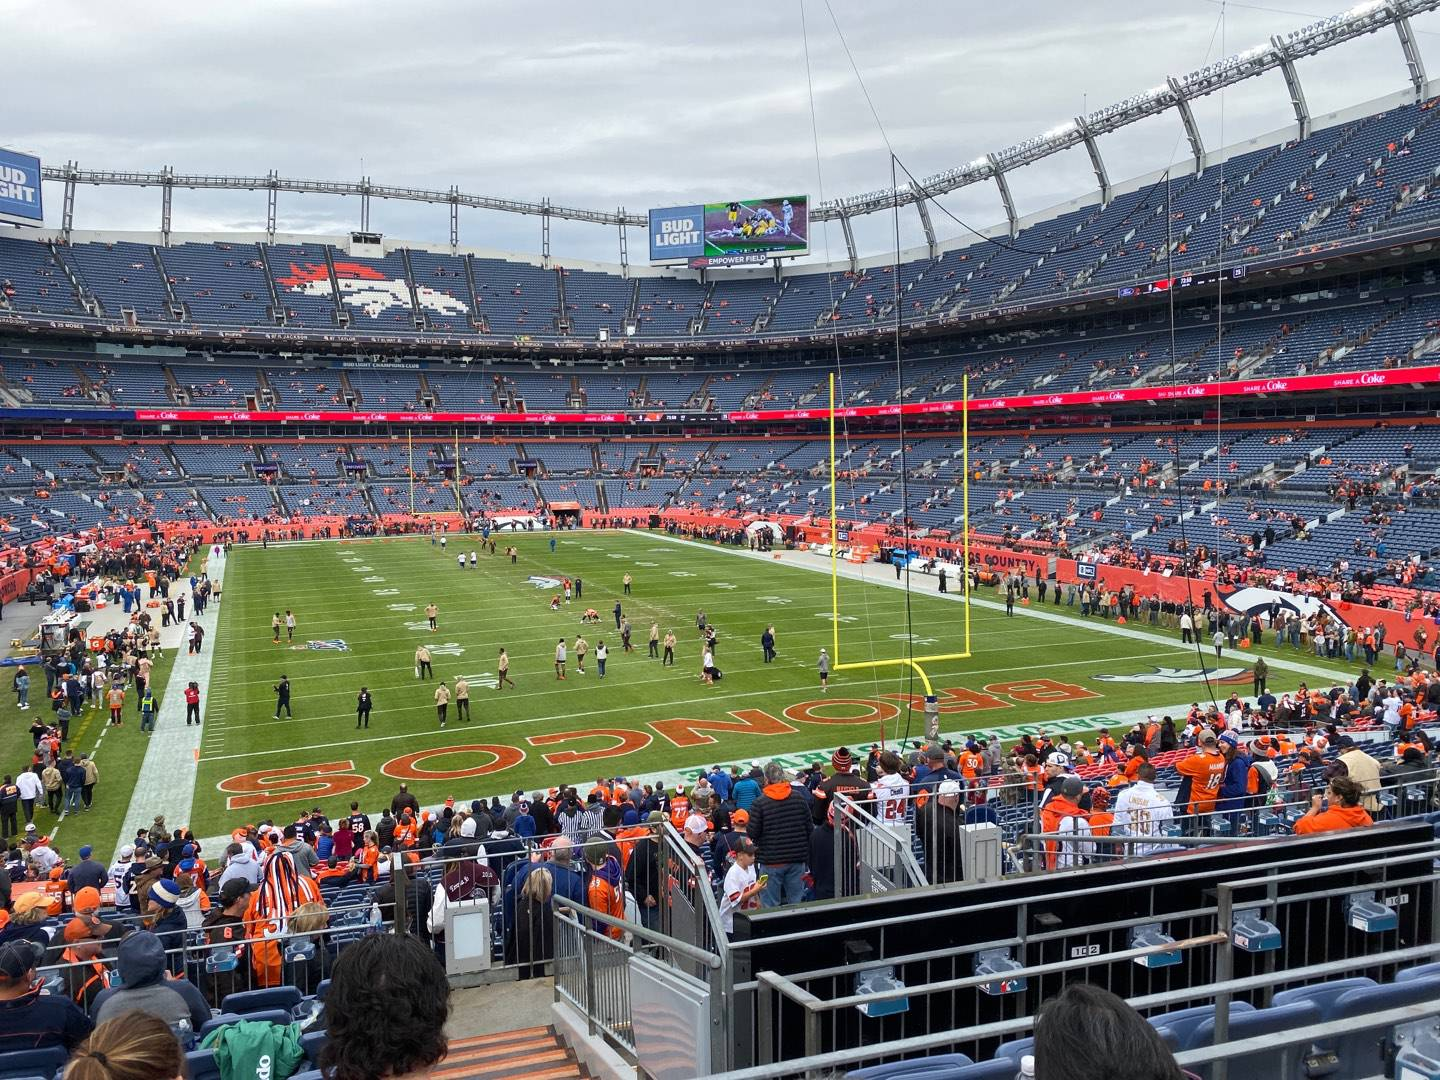 Empower Field at Mile High Stadium Section 134 Row 34 Seat 5